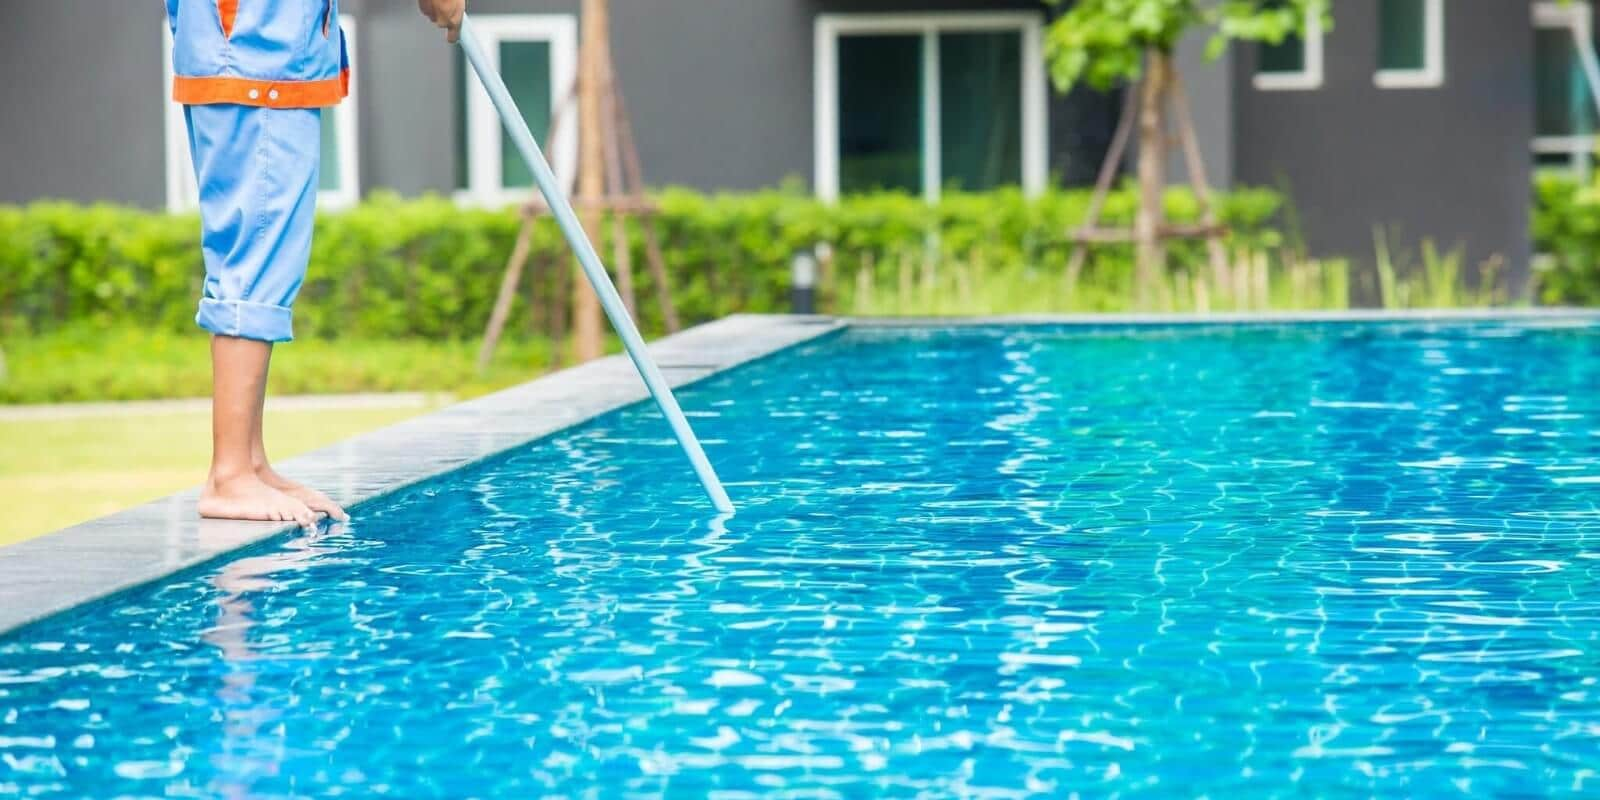 The Best Pool Service Company in Florida